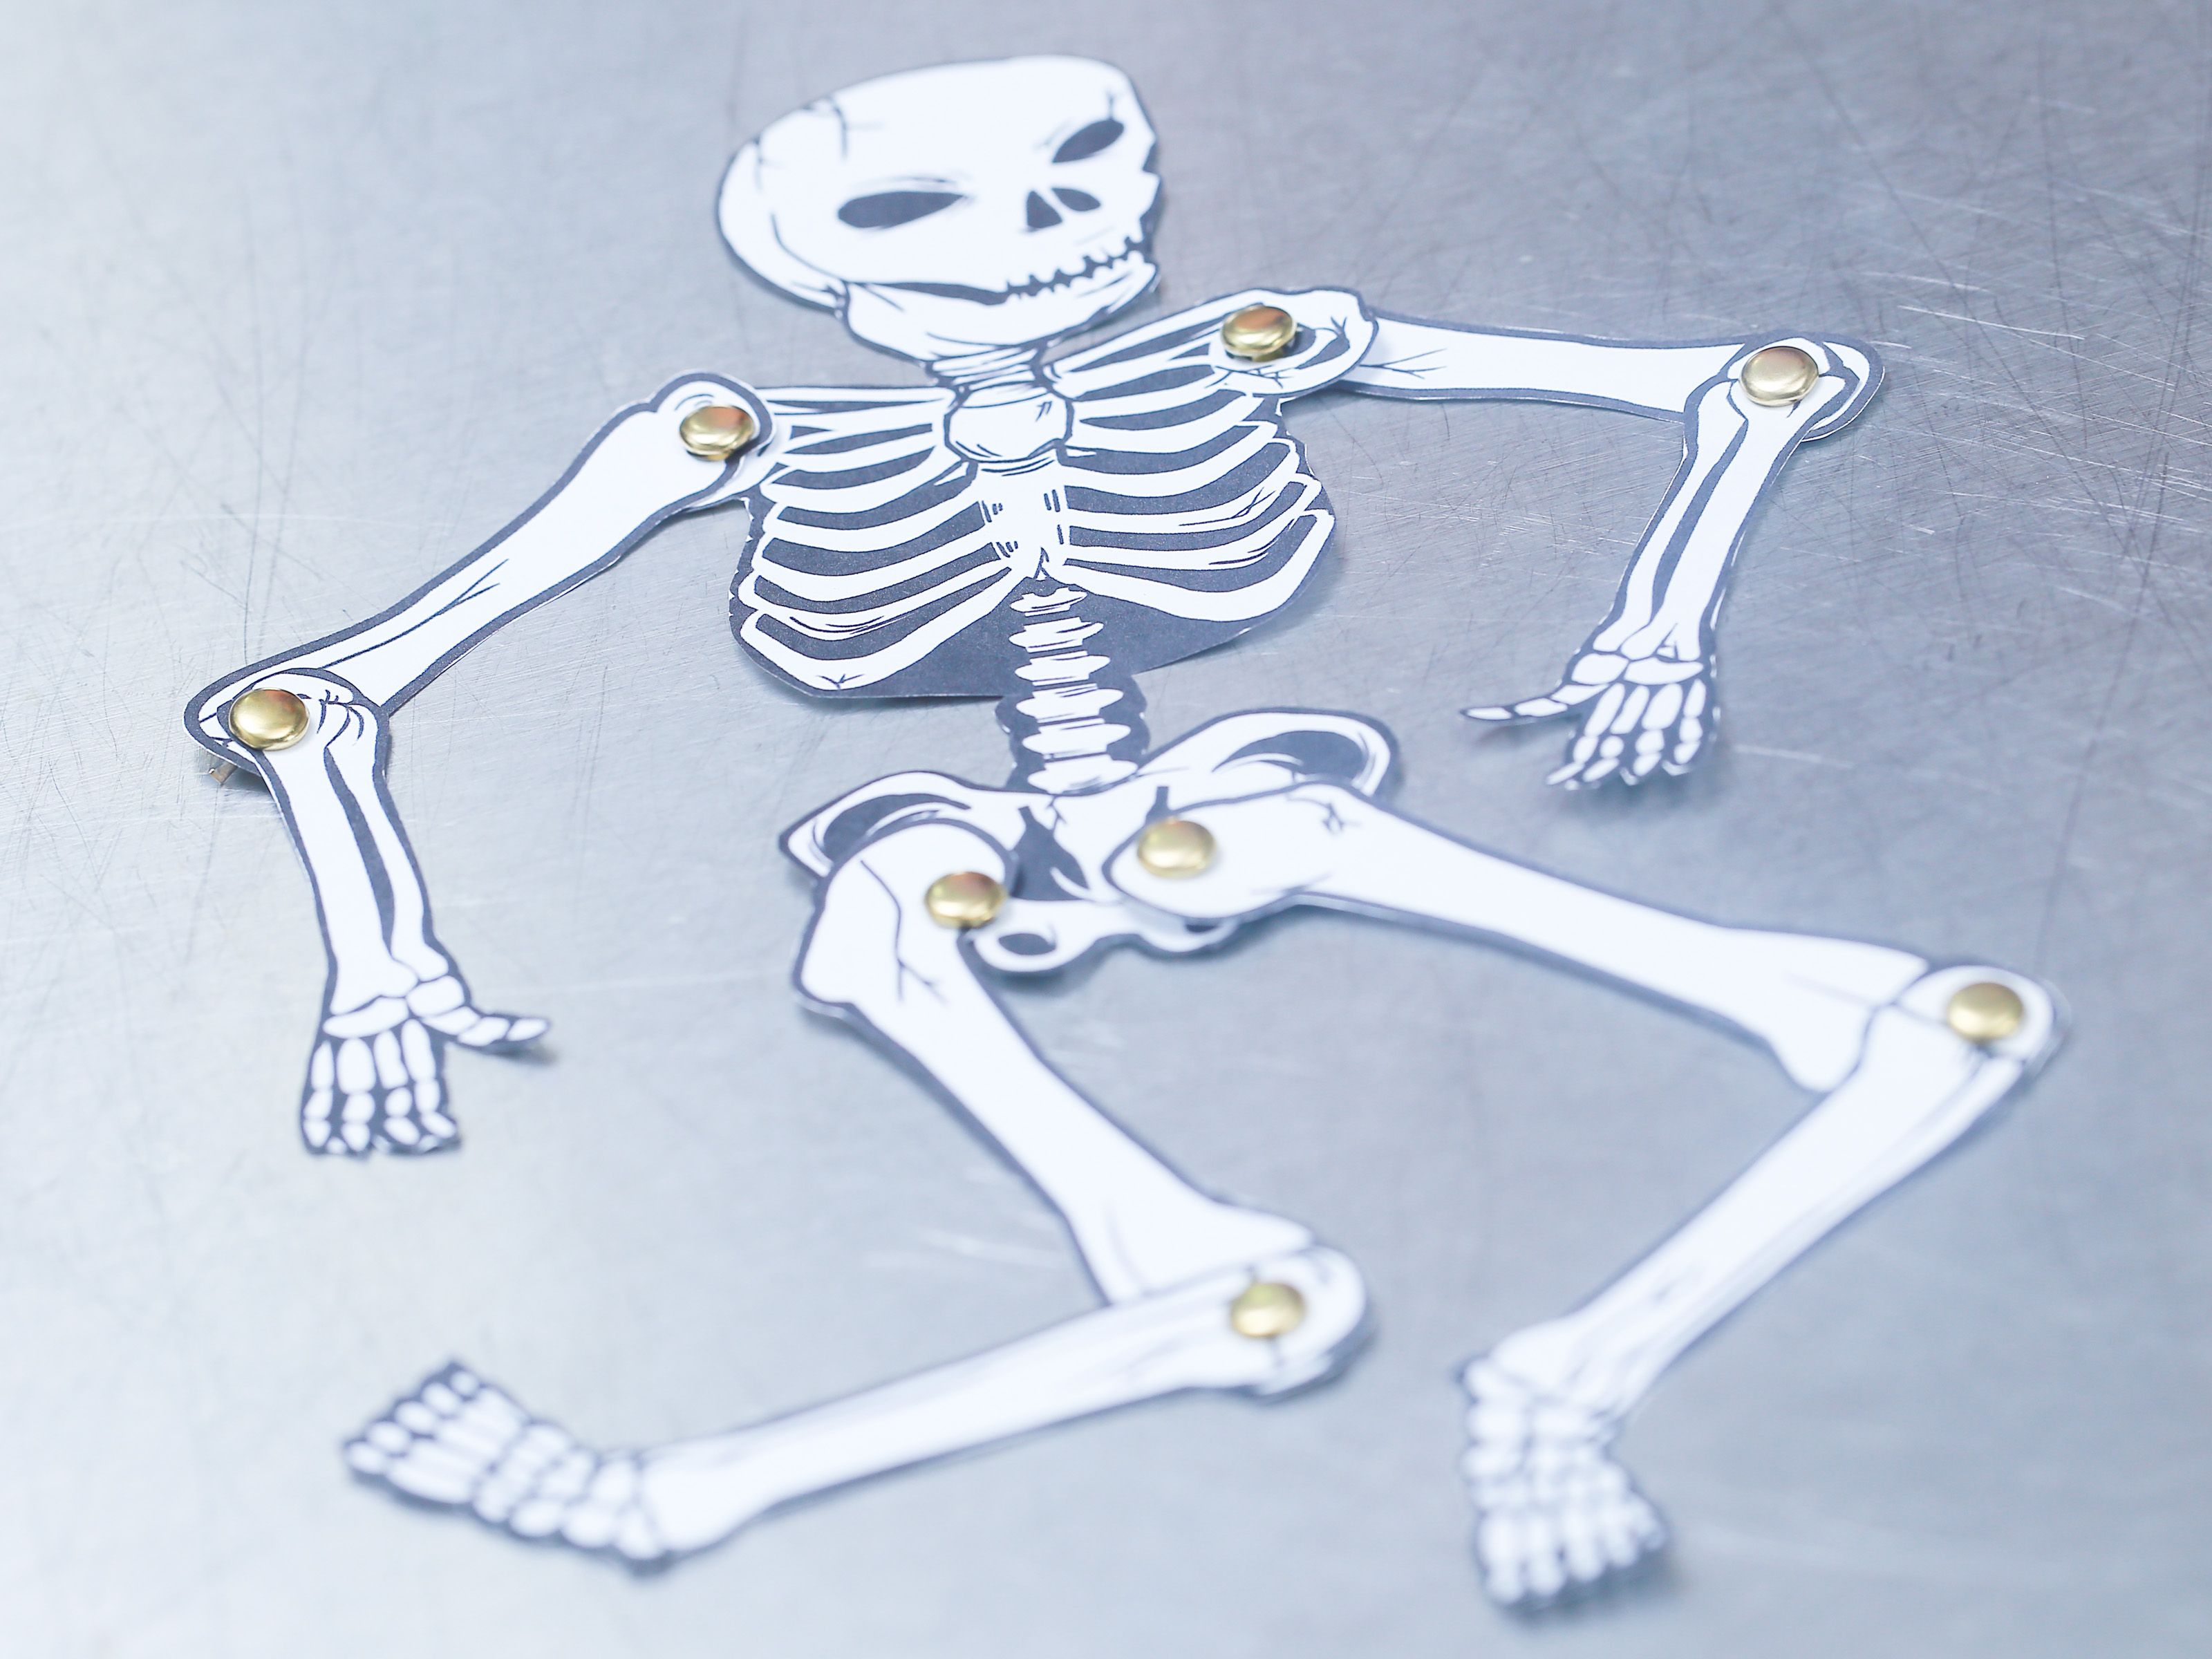 How to Make a Human Skeleton out of Paper   Human skeleton [ 2400 x 3200 Pixel ]